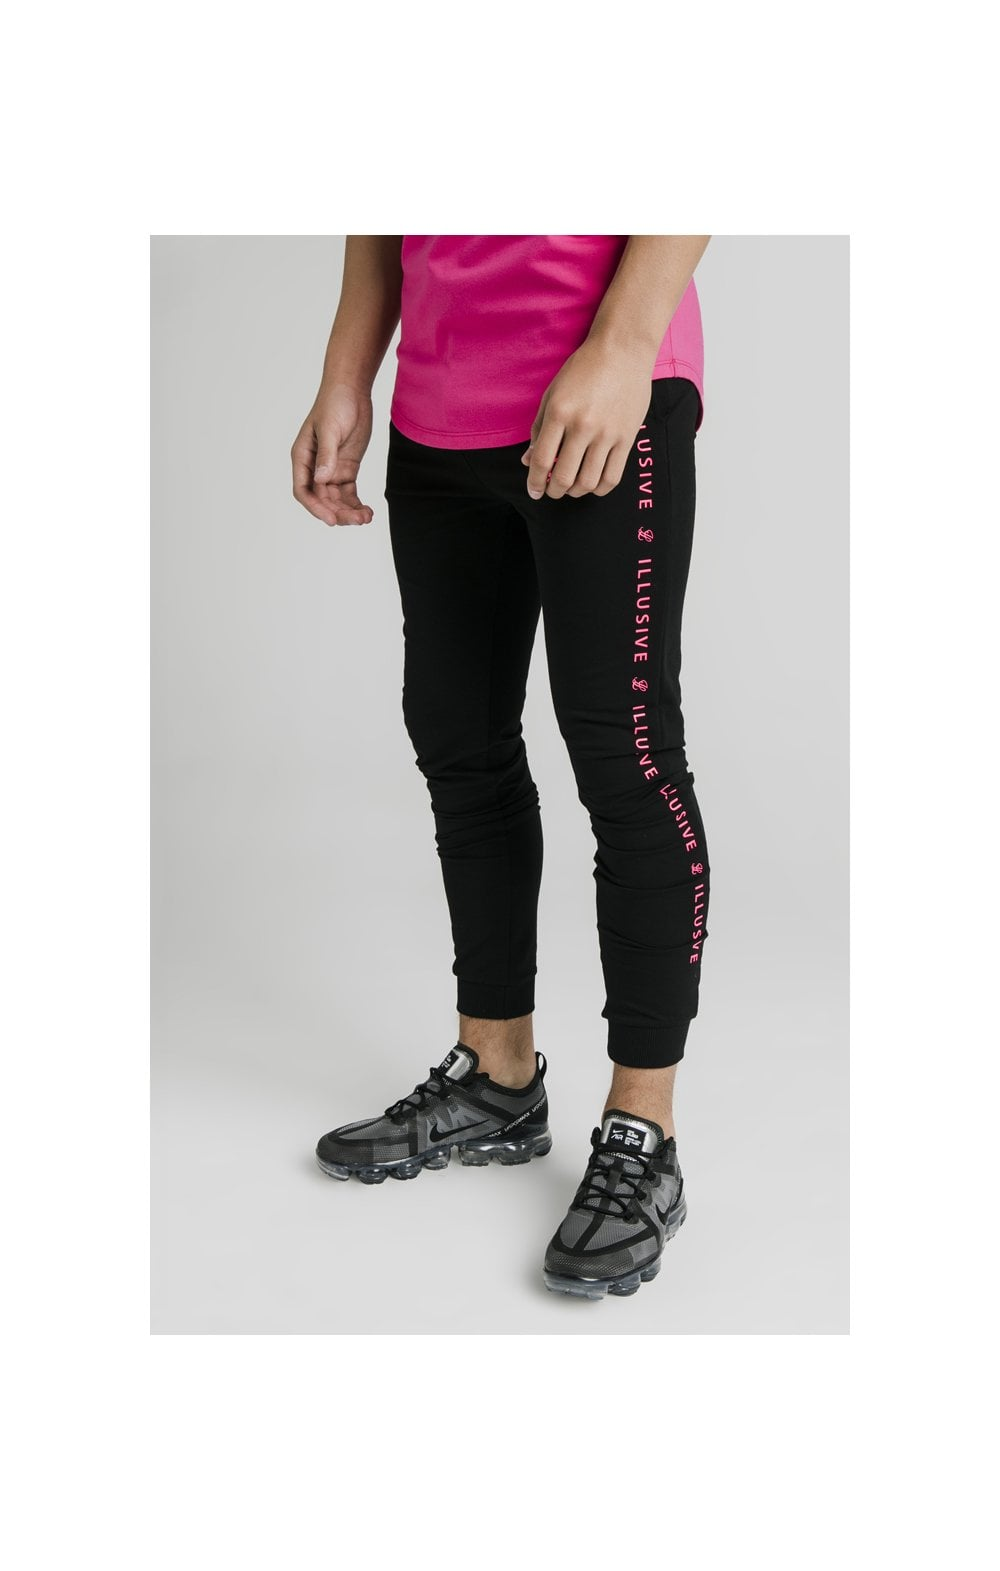 Illusive London Cuffed Joggers – Black & Pink